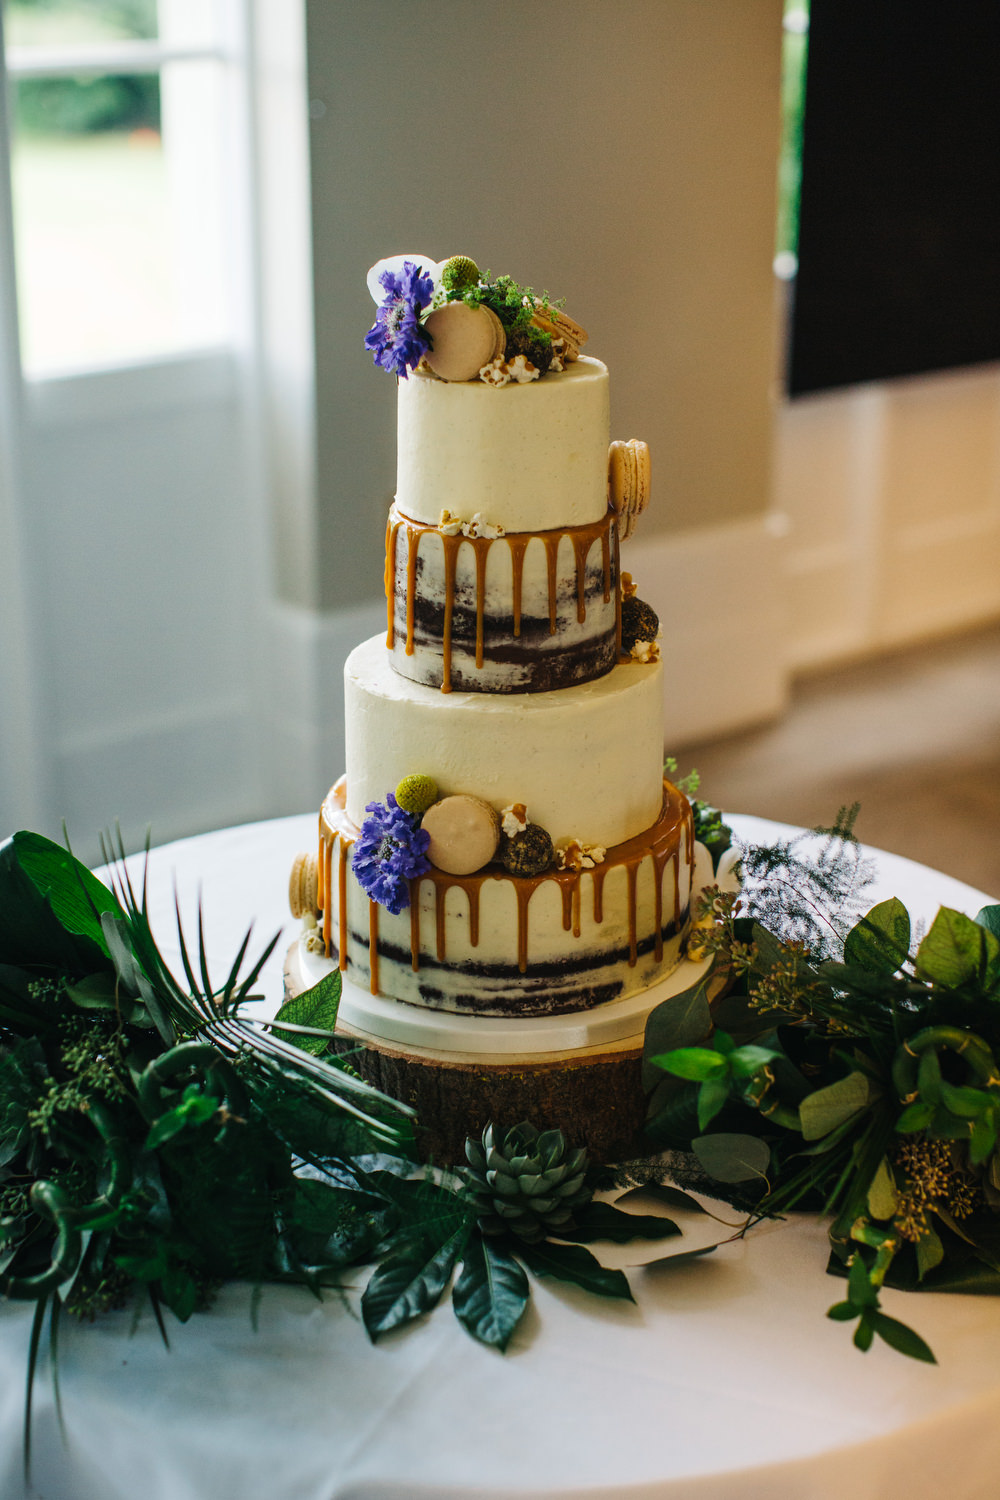 Buttercream Cake Drip Macaron Popcorn Flowers Chocolate Tropical Deer Park Country House Hotel Wedding Richard Skins Photography